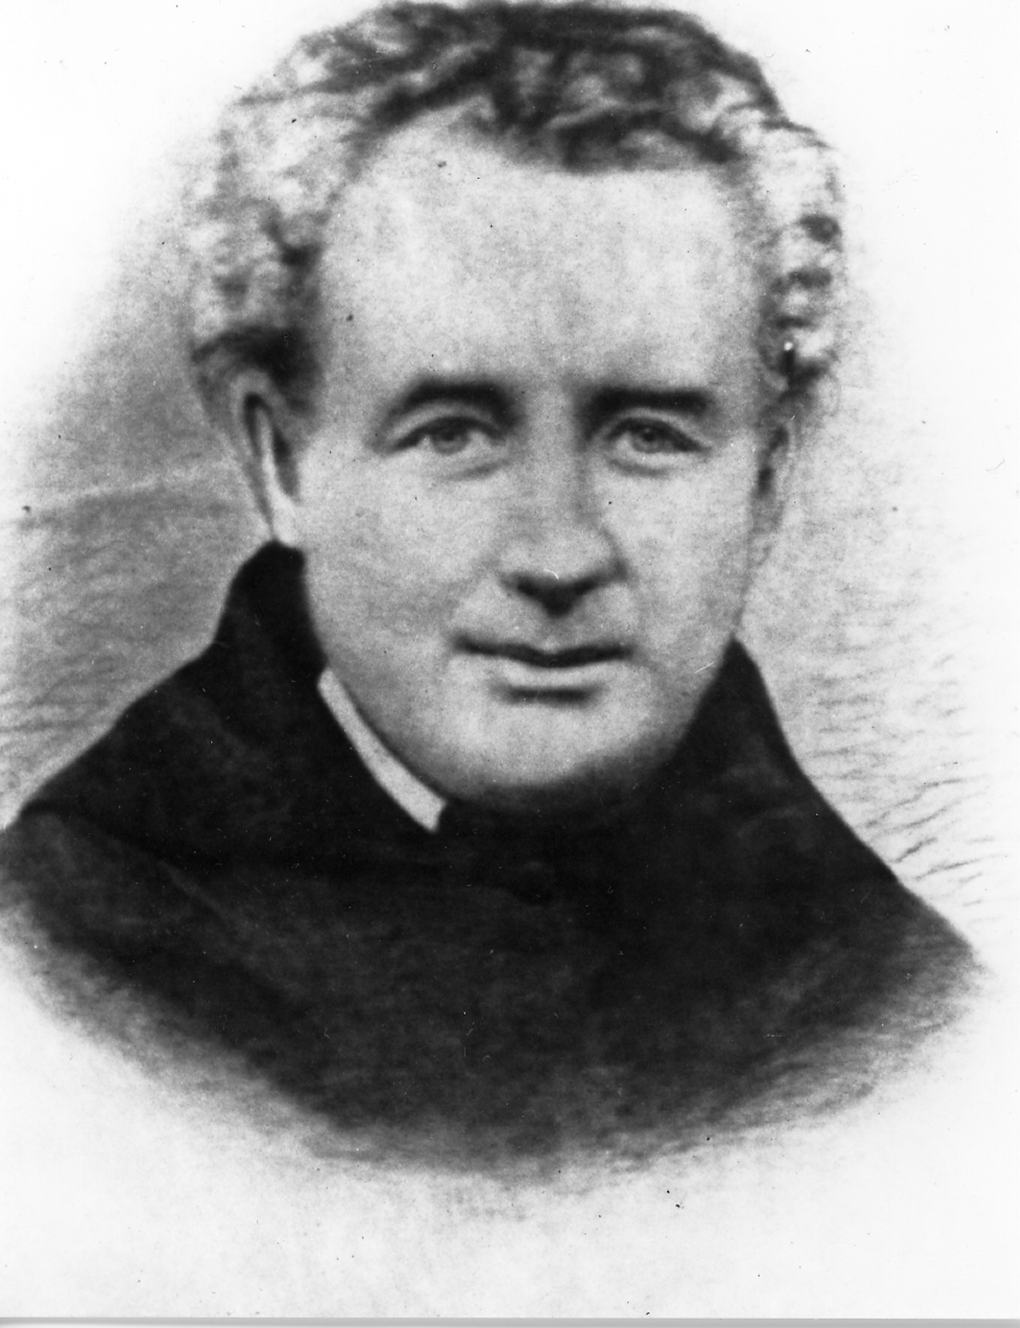 Reverend William Harnett, O.S.A.